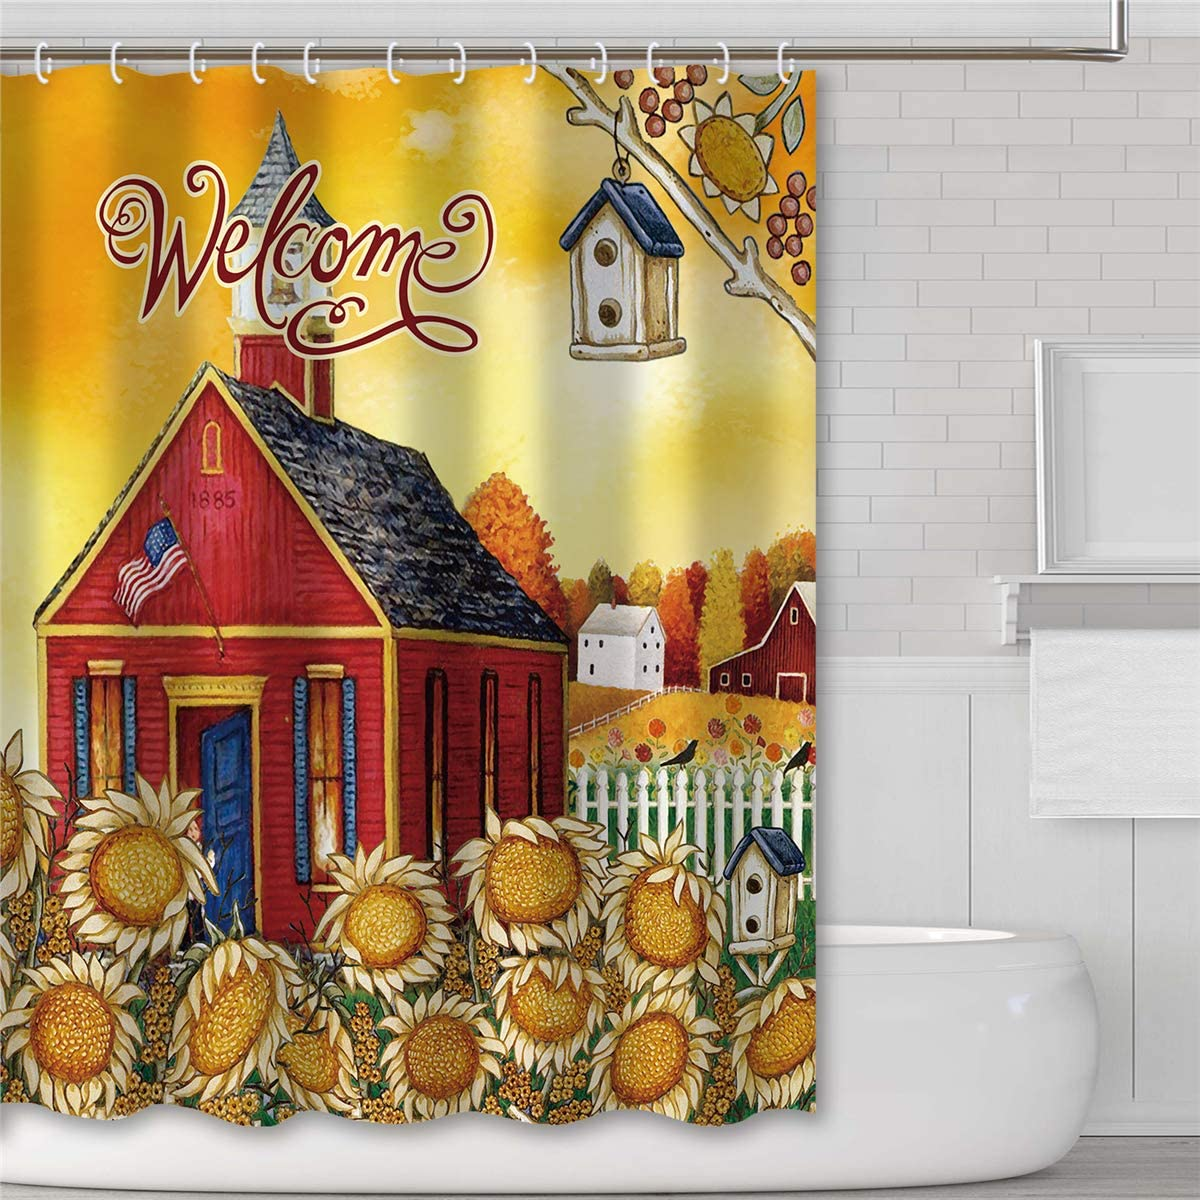 Tititex Harvest Welcome Fall Farmhouse Shower Curtain Sets, Autumn Bird Nest Sunflowers Bath Decorations Waterproof Polyester Fabric with Hooks, 69 X 70 Inches